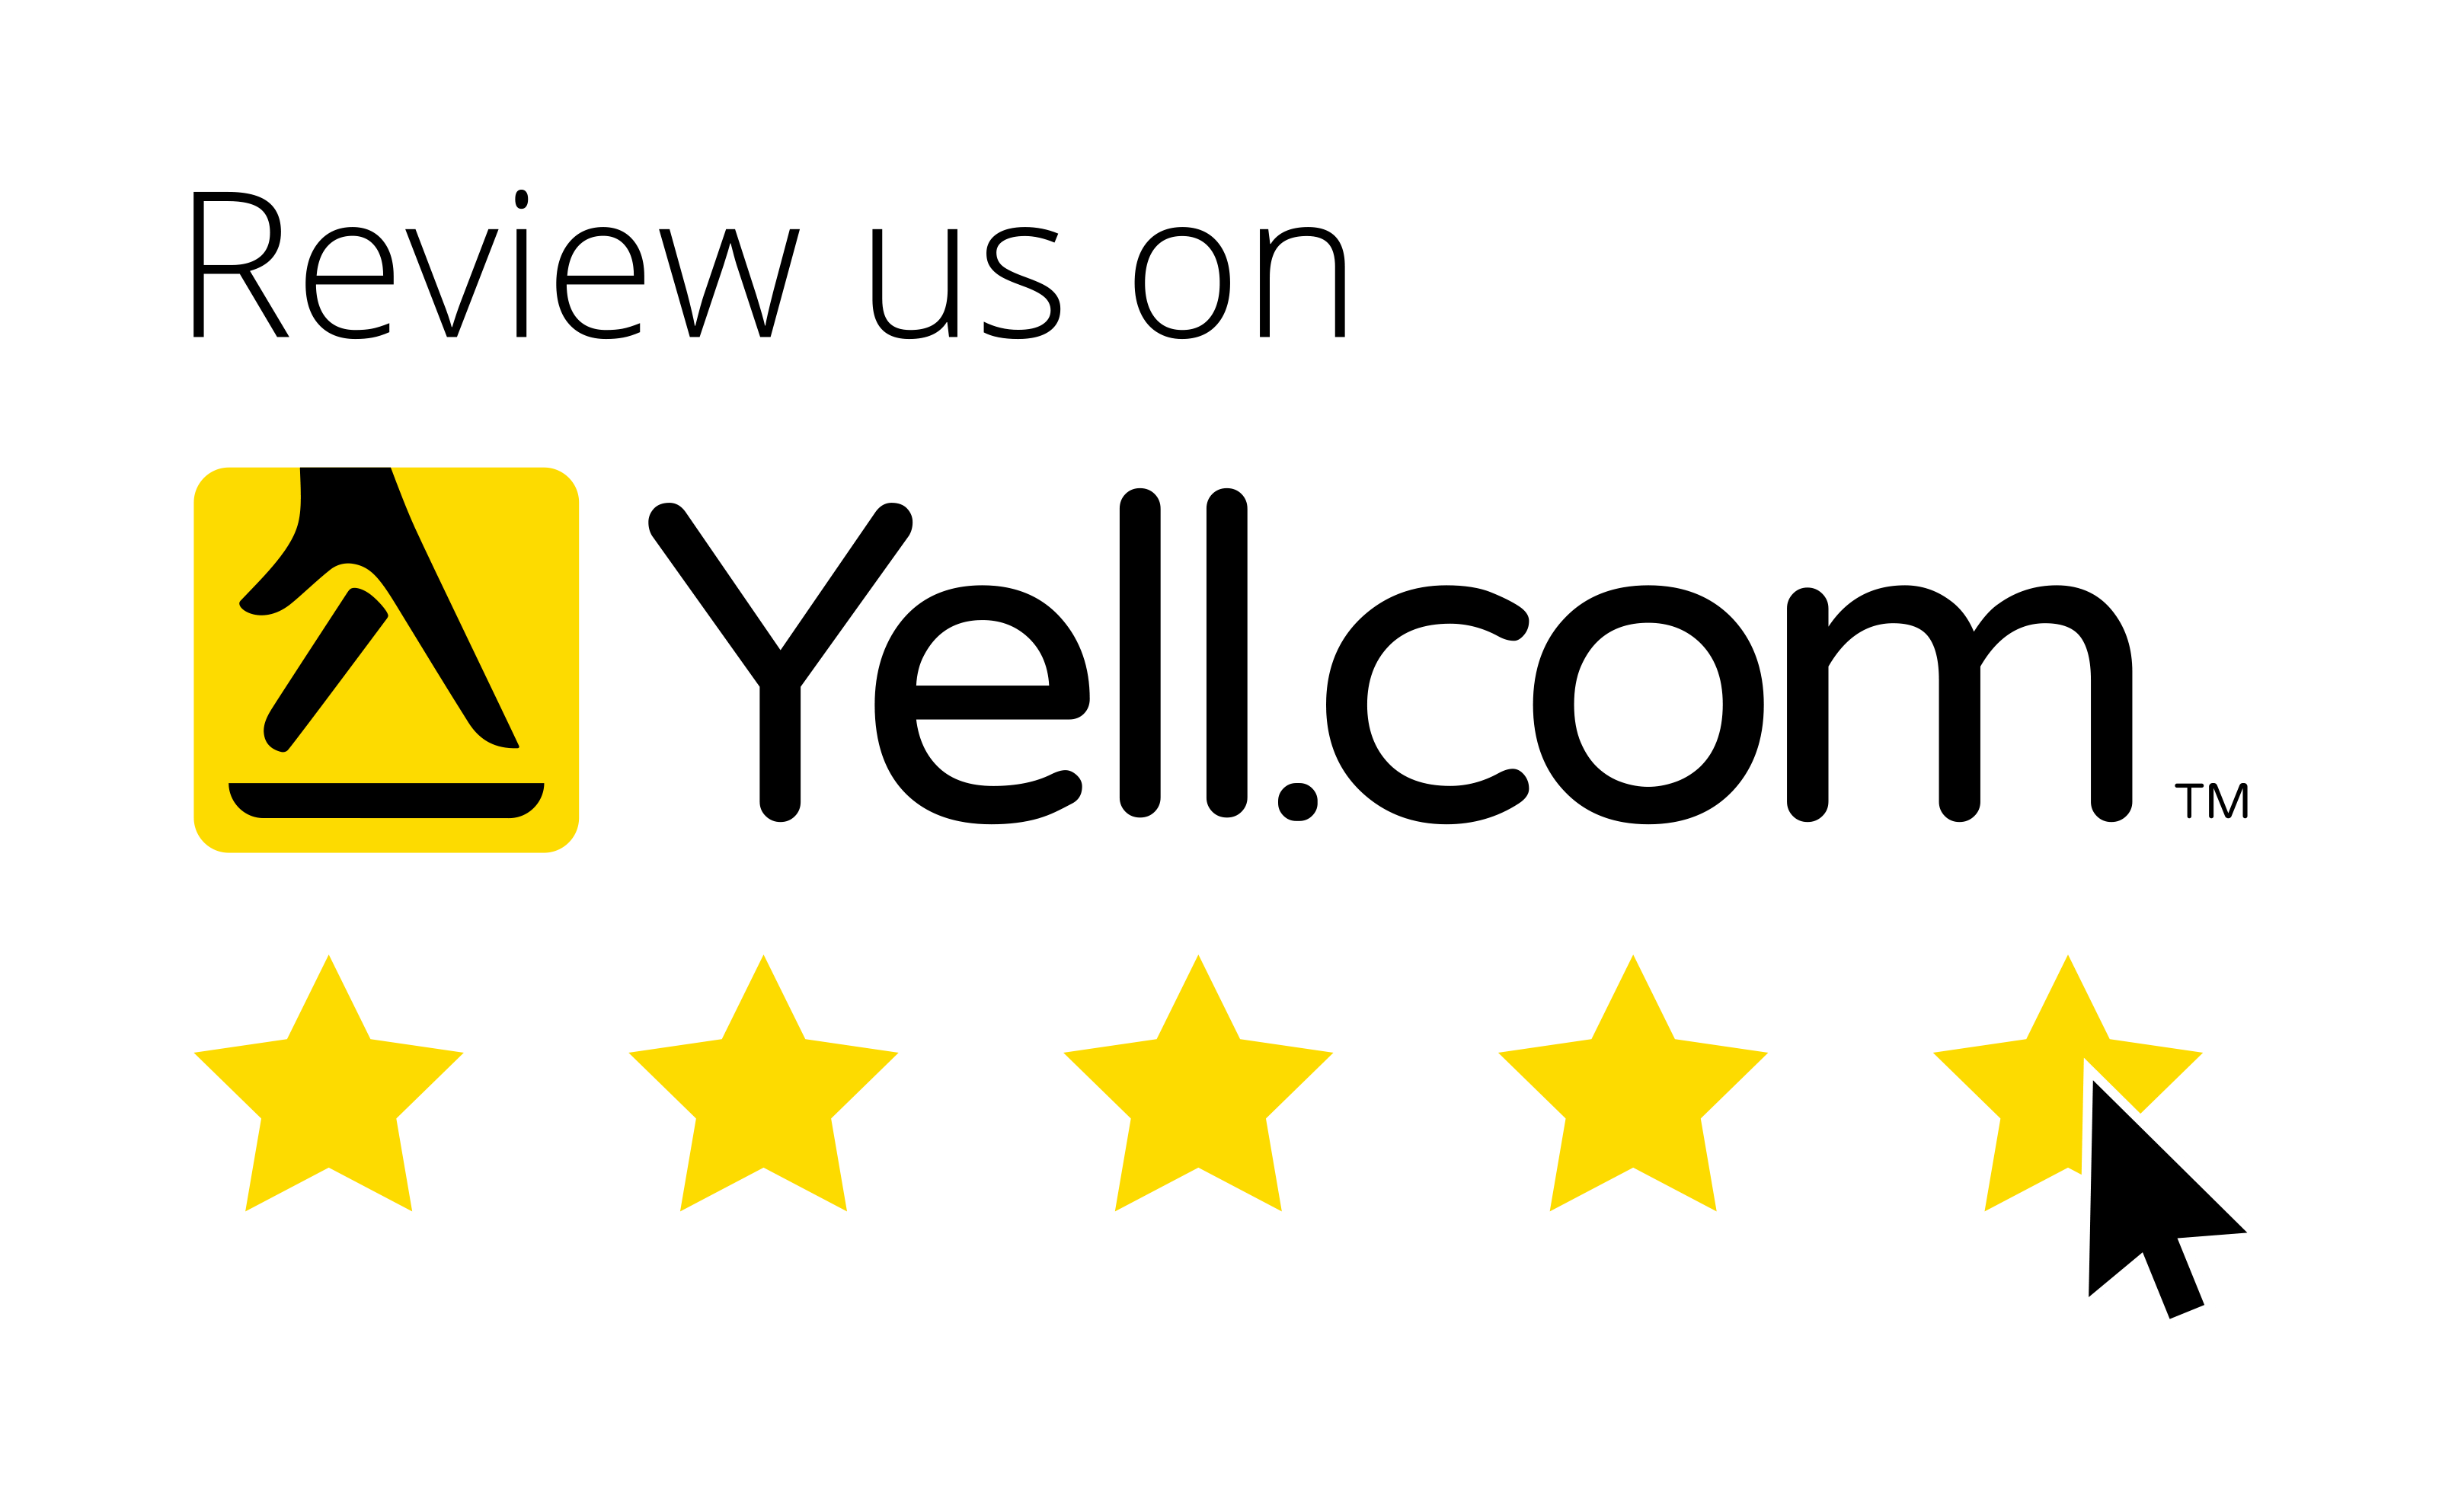 review us on Yell.com